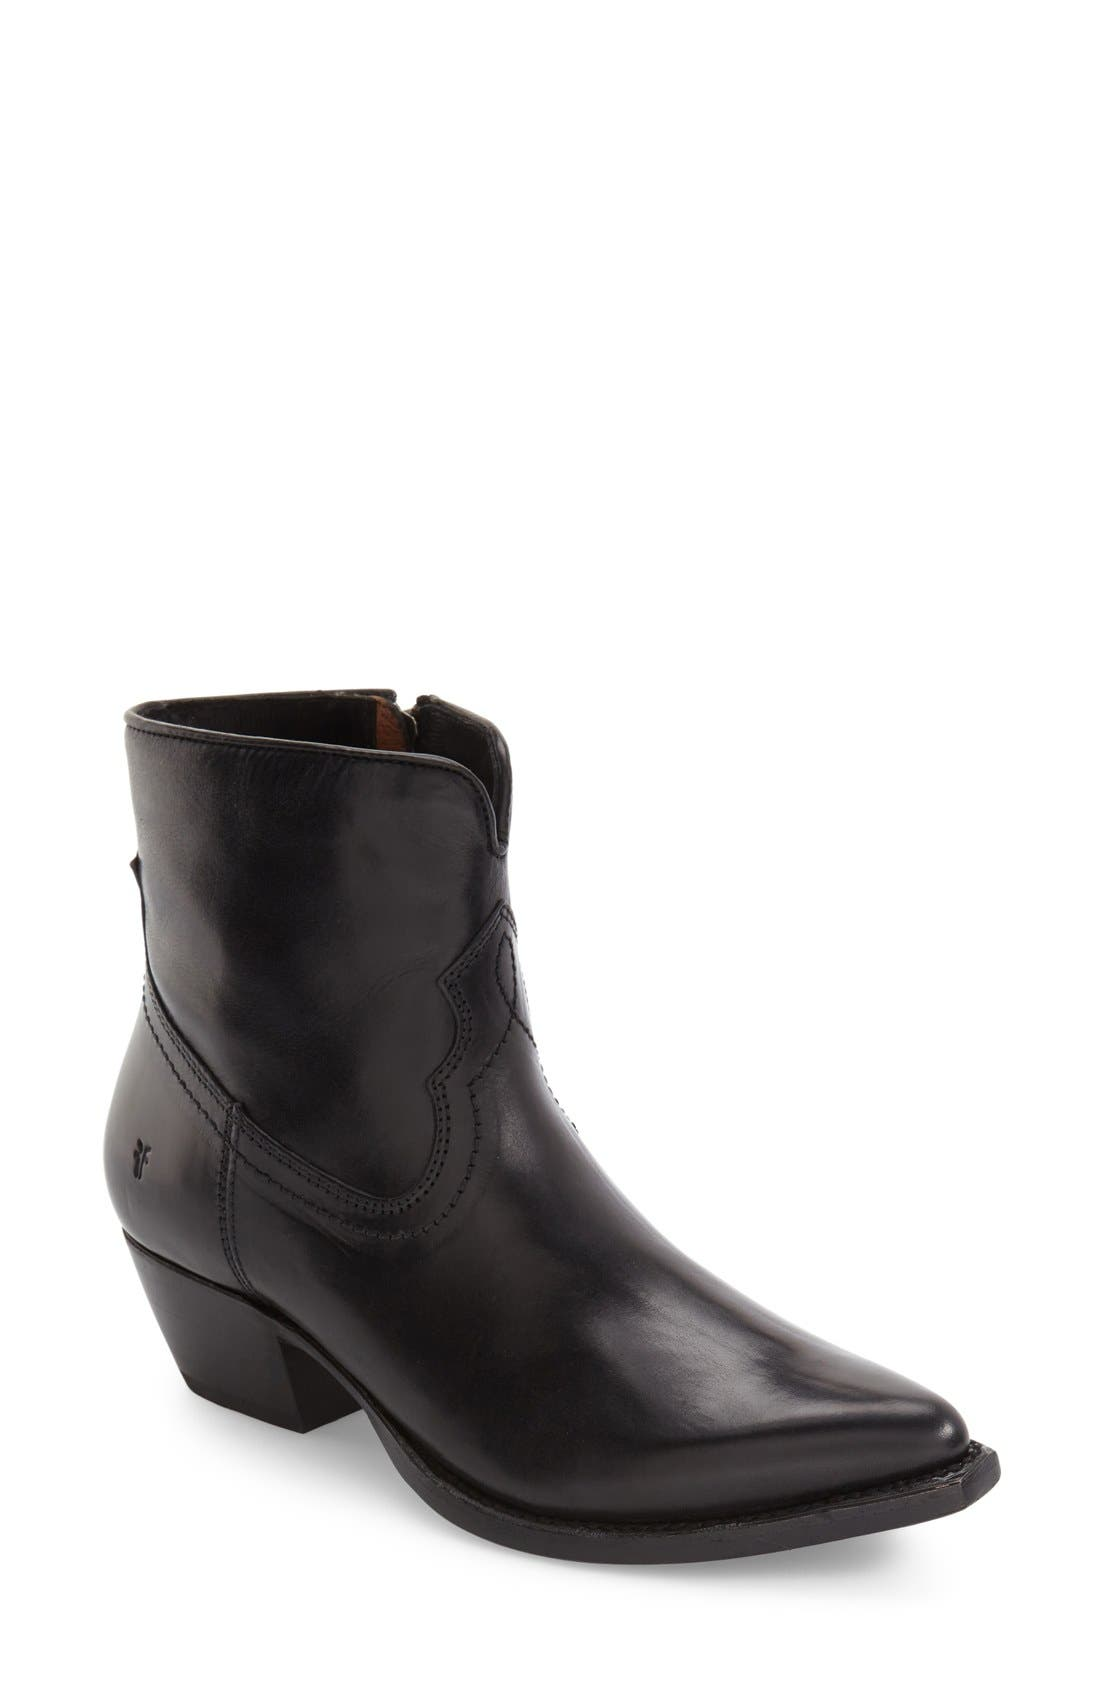 'Shane' Western Bootie,                         Main,                         color, Black Leather